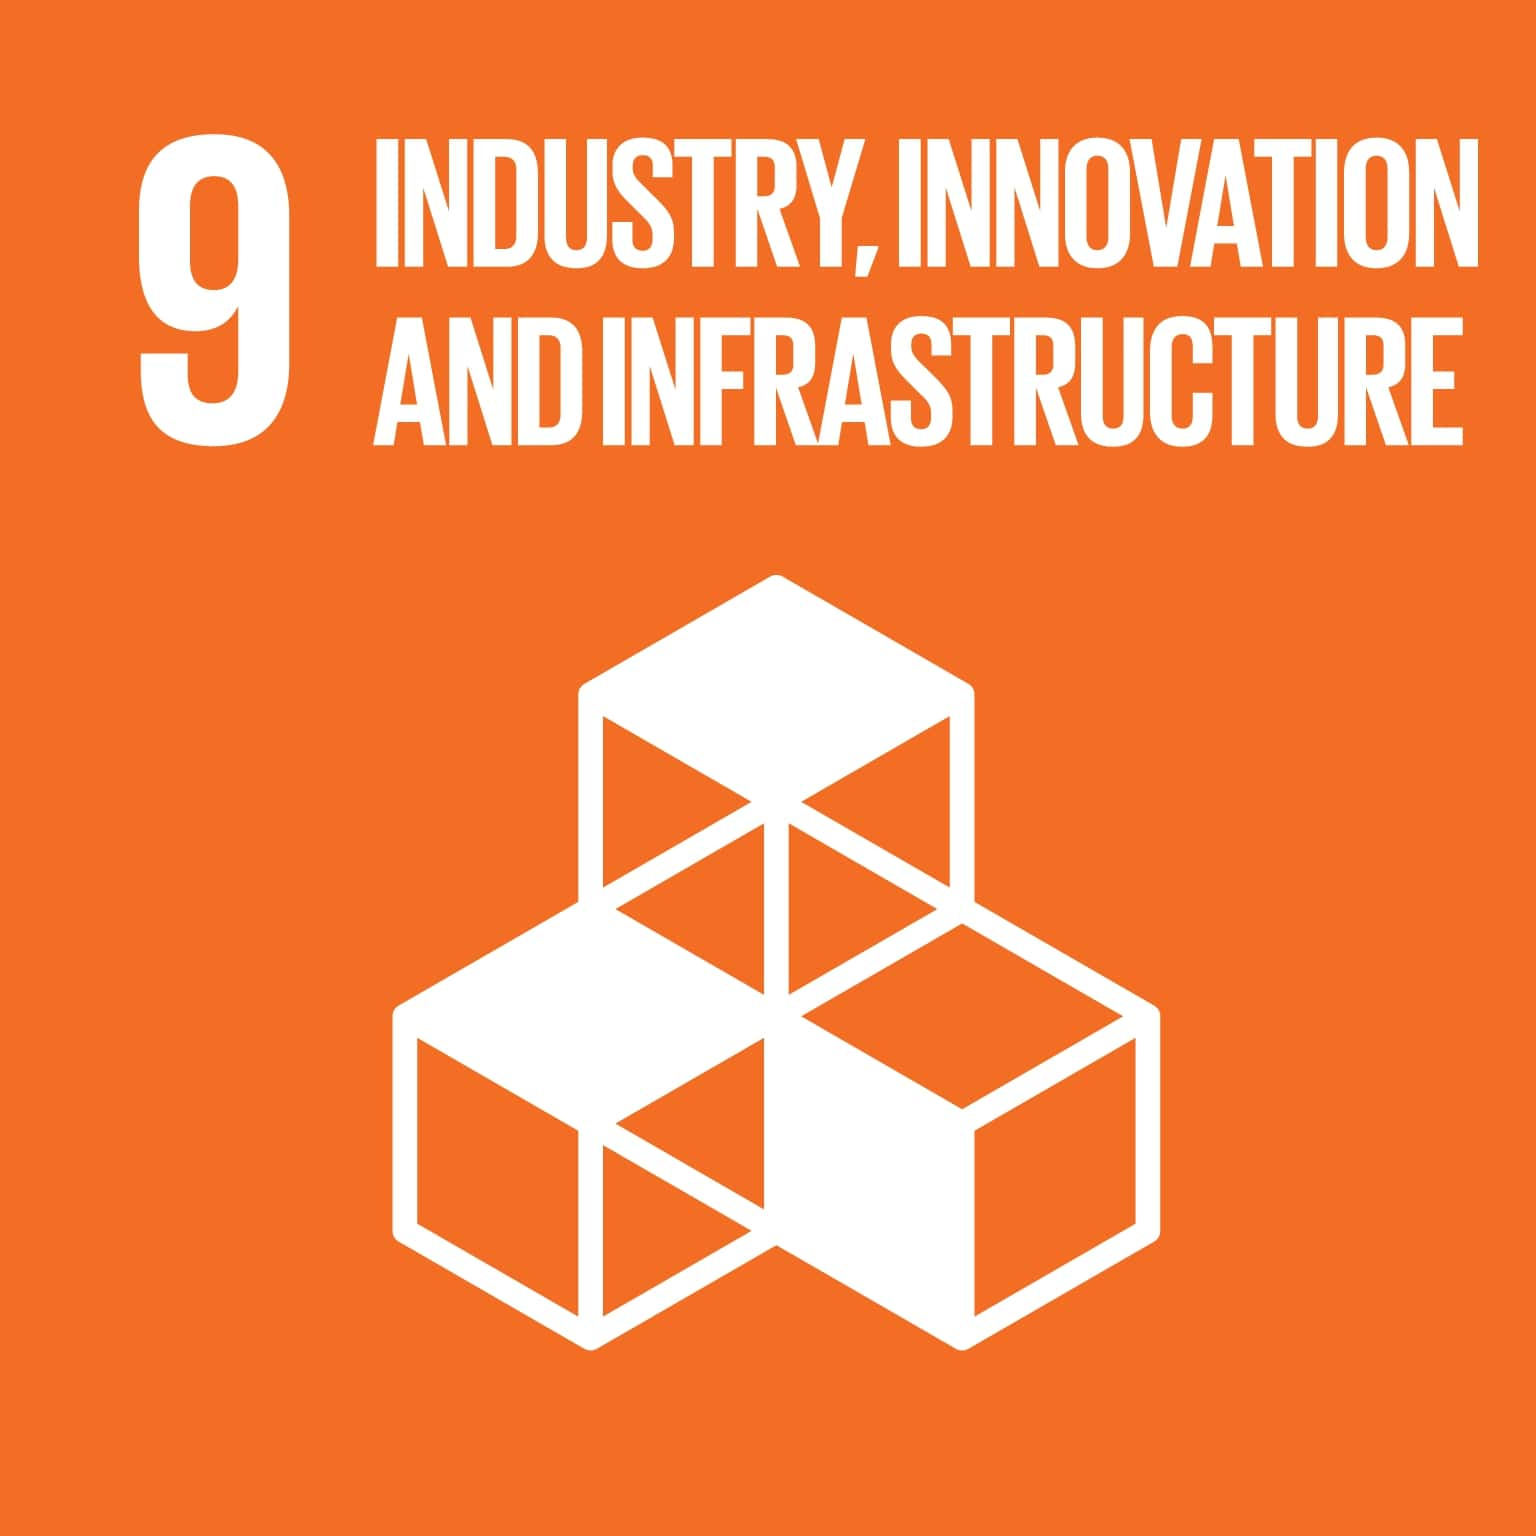 SUSTAINABLE DEVELOPMENT GOAL 9: Build resilient infrastructure, promote inclusive and sustainable industrialization and foster innovation